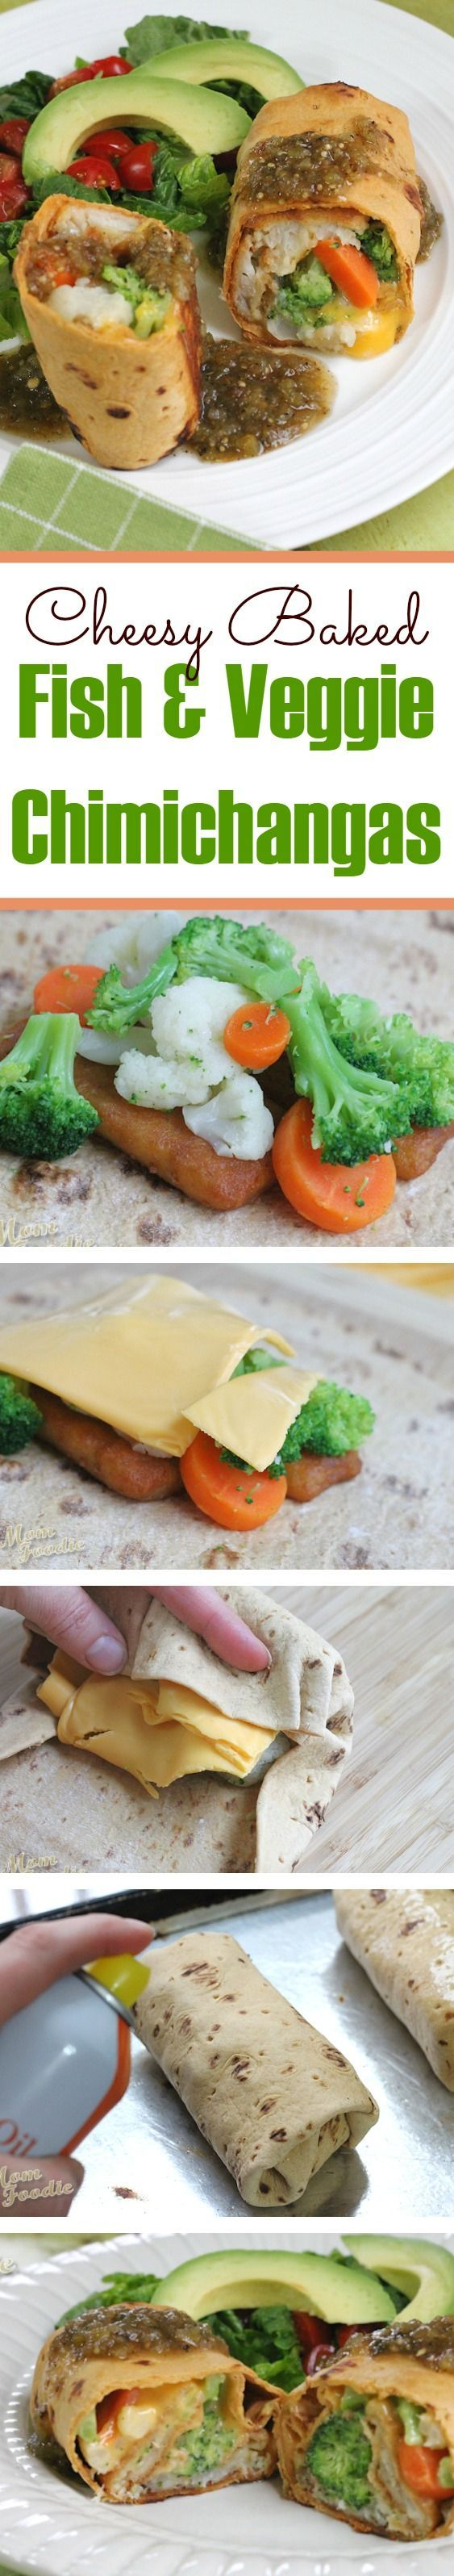 130 best easy dinner recipes images on pinterest chicken recipes easy cheesy fish veggie chimichangas forumfinder Image collections